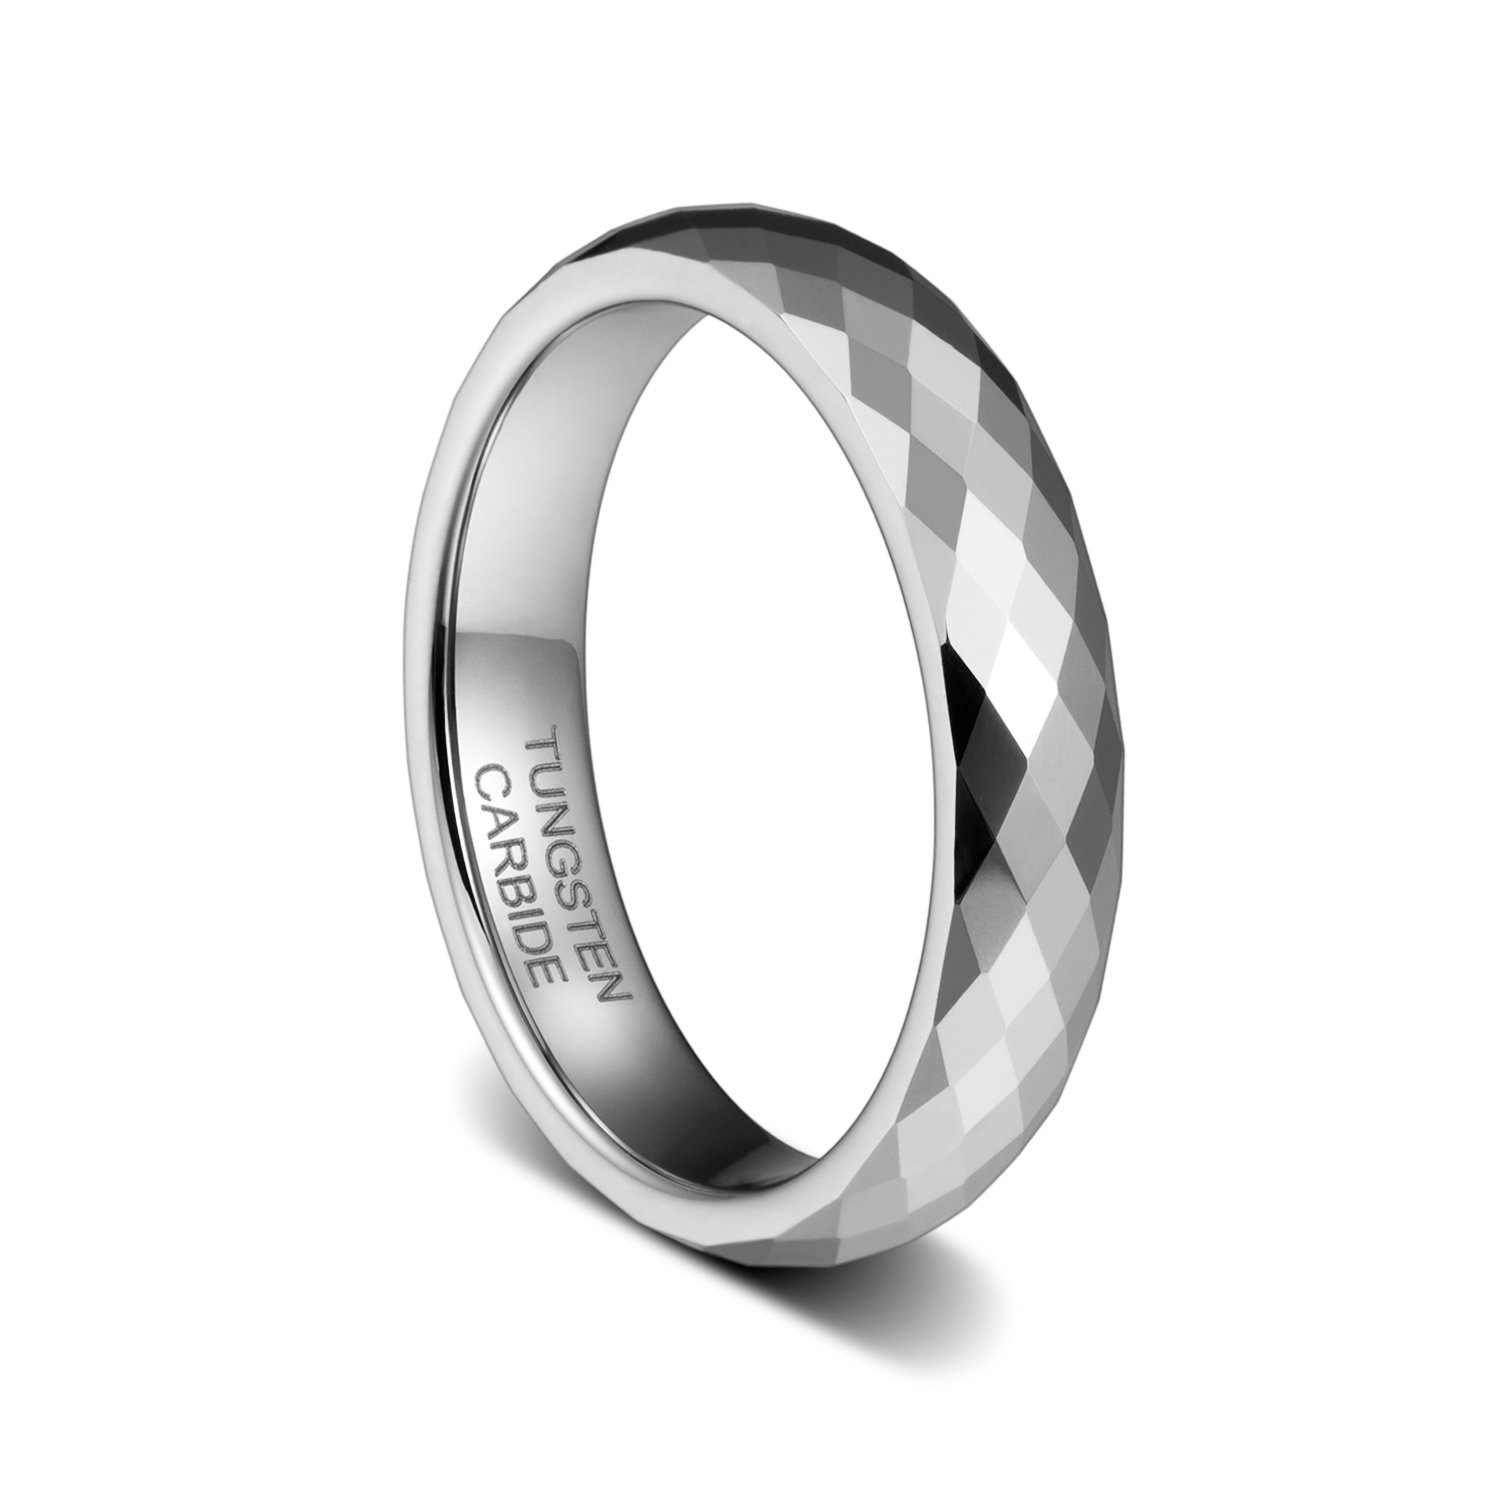 TUSEN JEWELRY 4mm Tungsten Carbide Wedding Band Engagement Rings Multi Faceted High Polish TS-20170703103